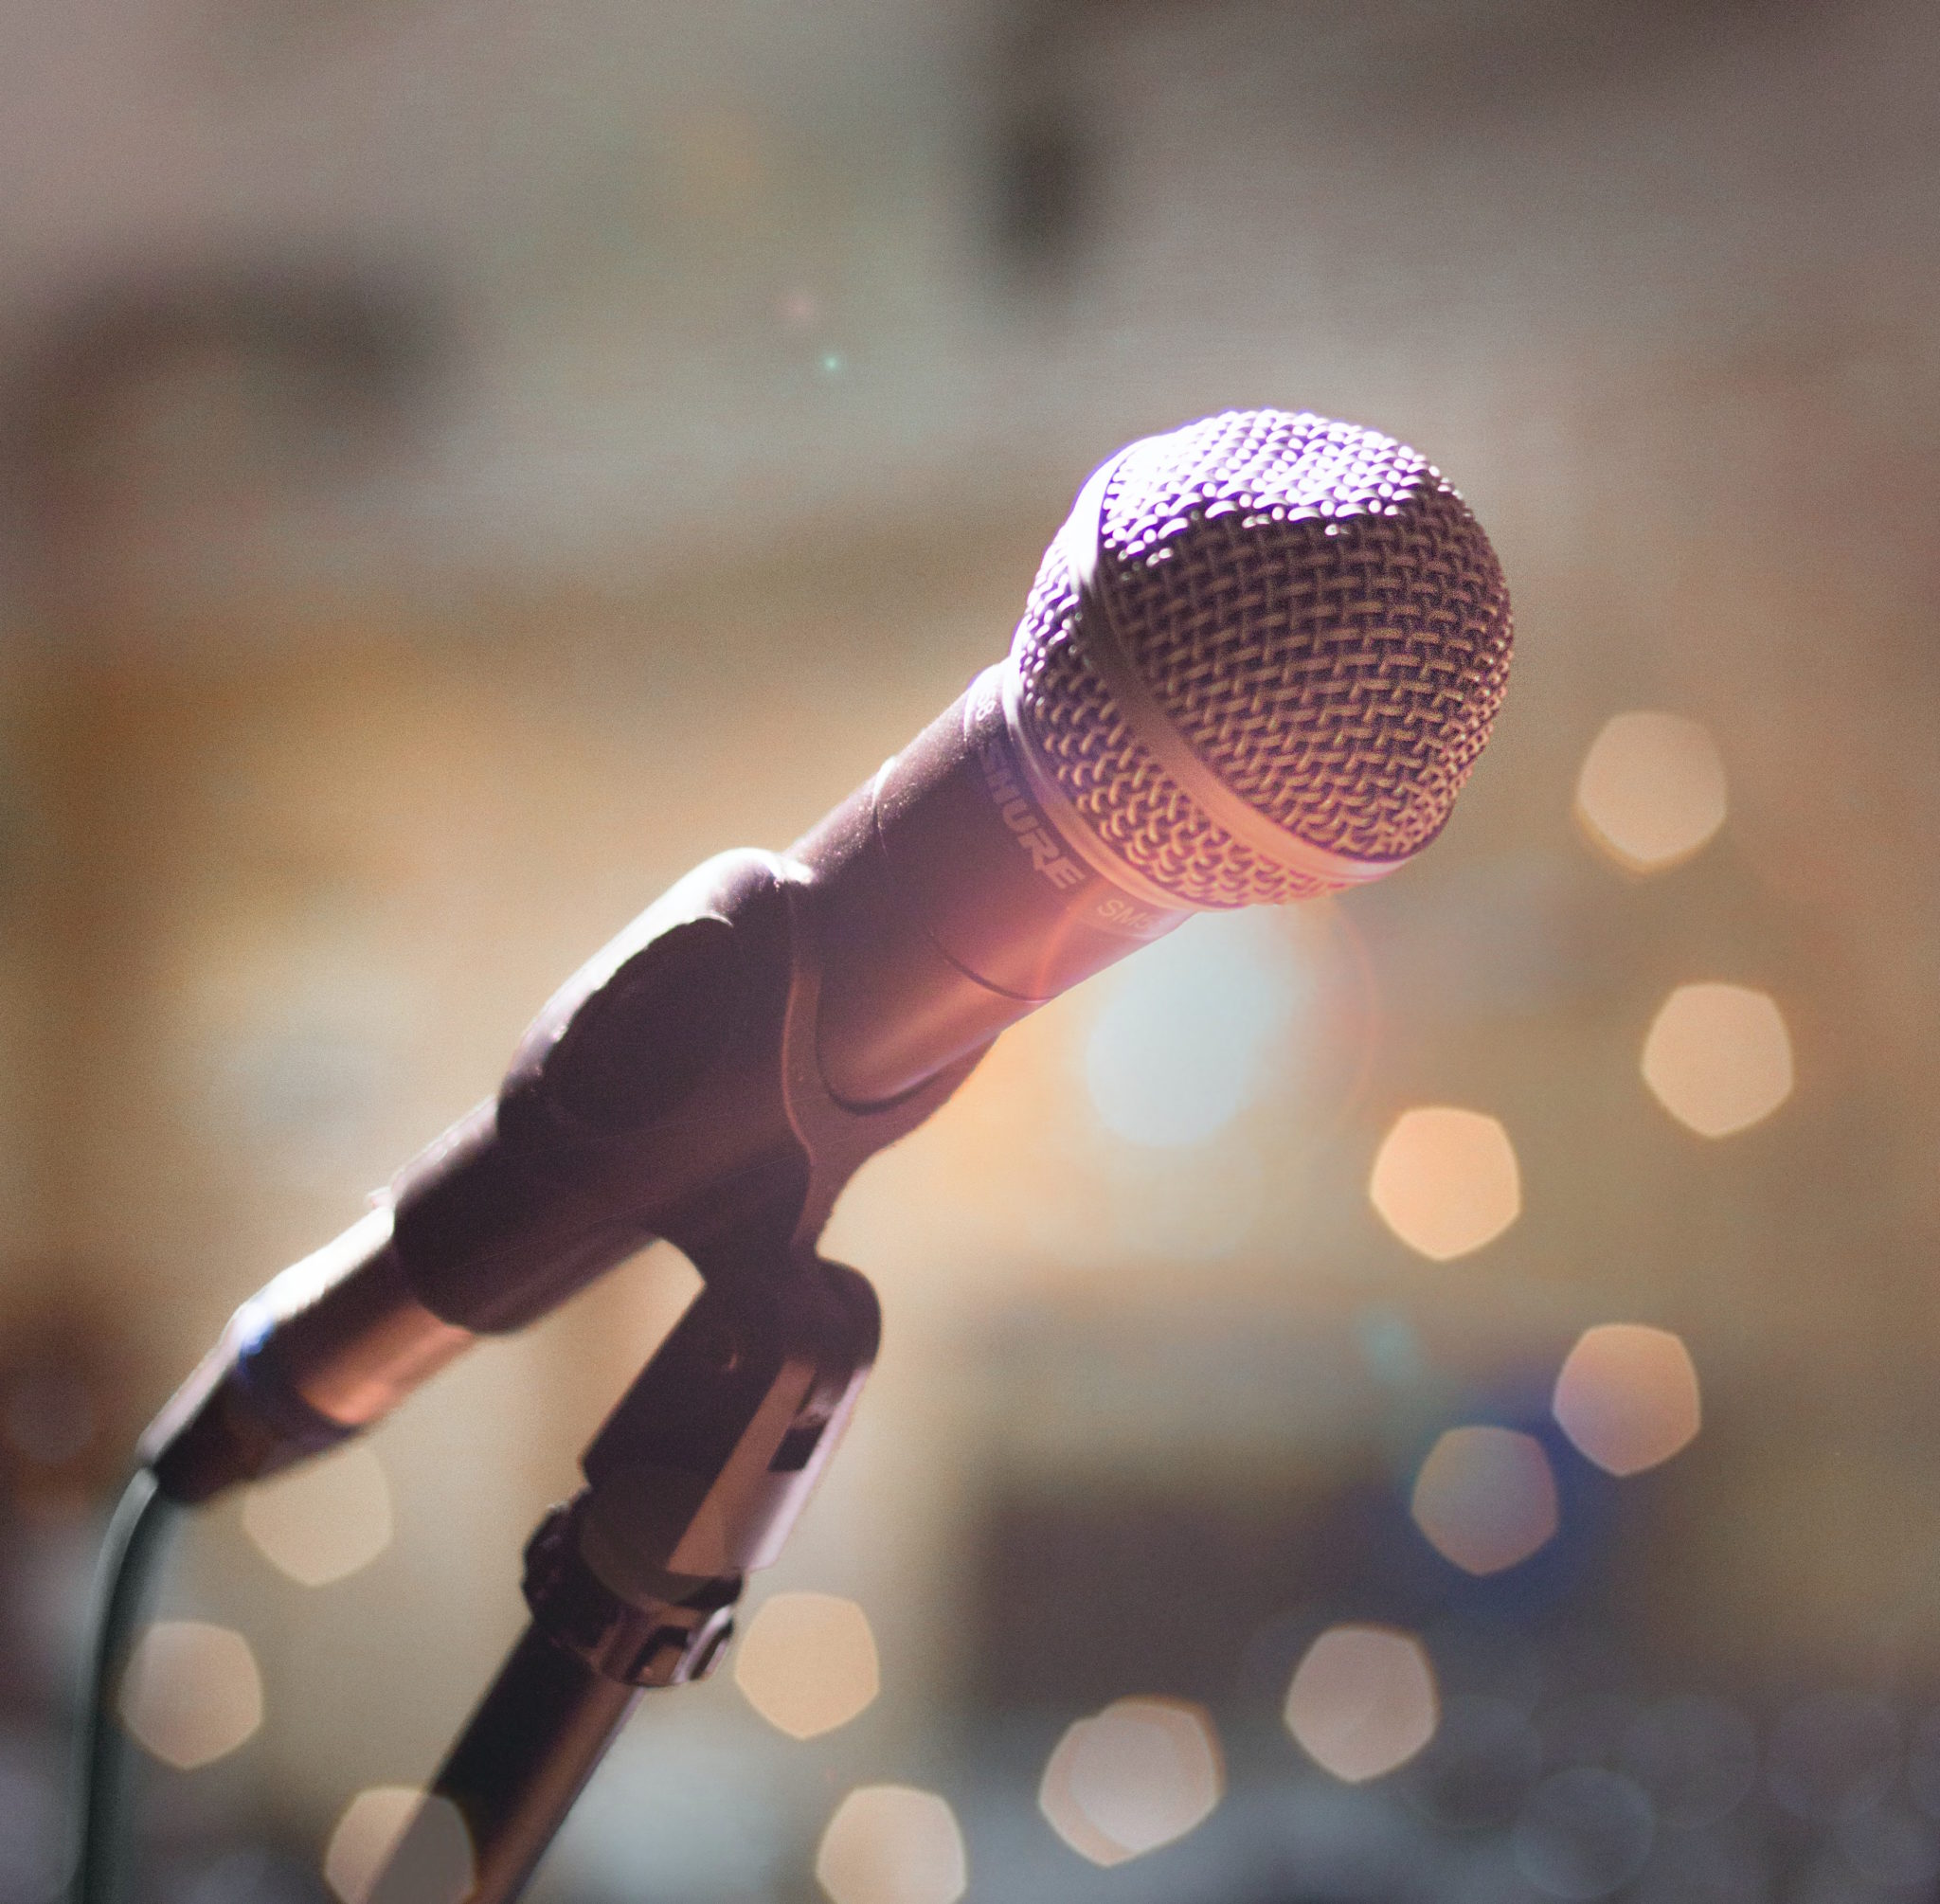 https://www.pexels.com/photo/close-up-photography-of-microphone-1032000/